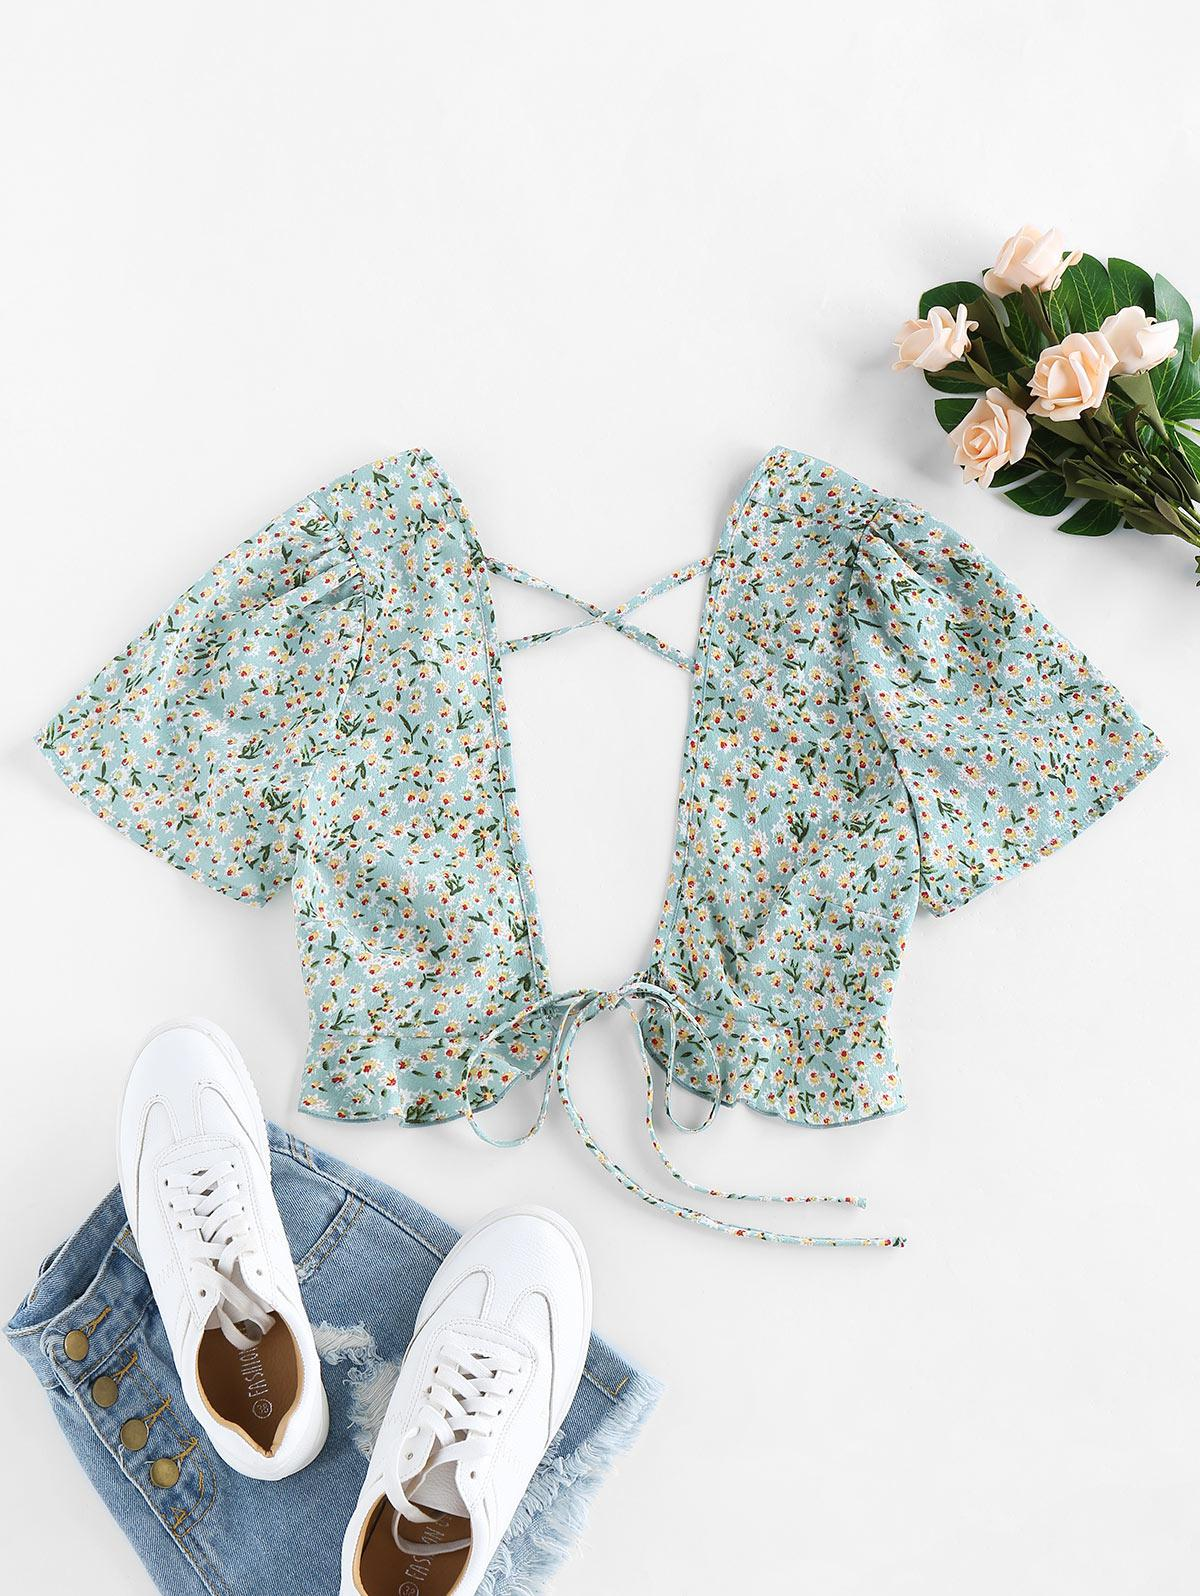 ZAFUL Ditsy Floral Plunging Cross Ruffle Tie Top